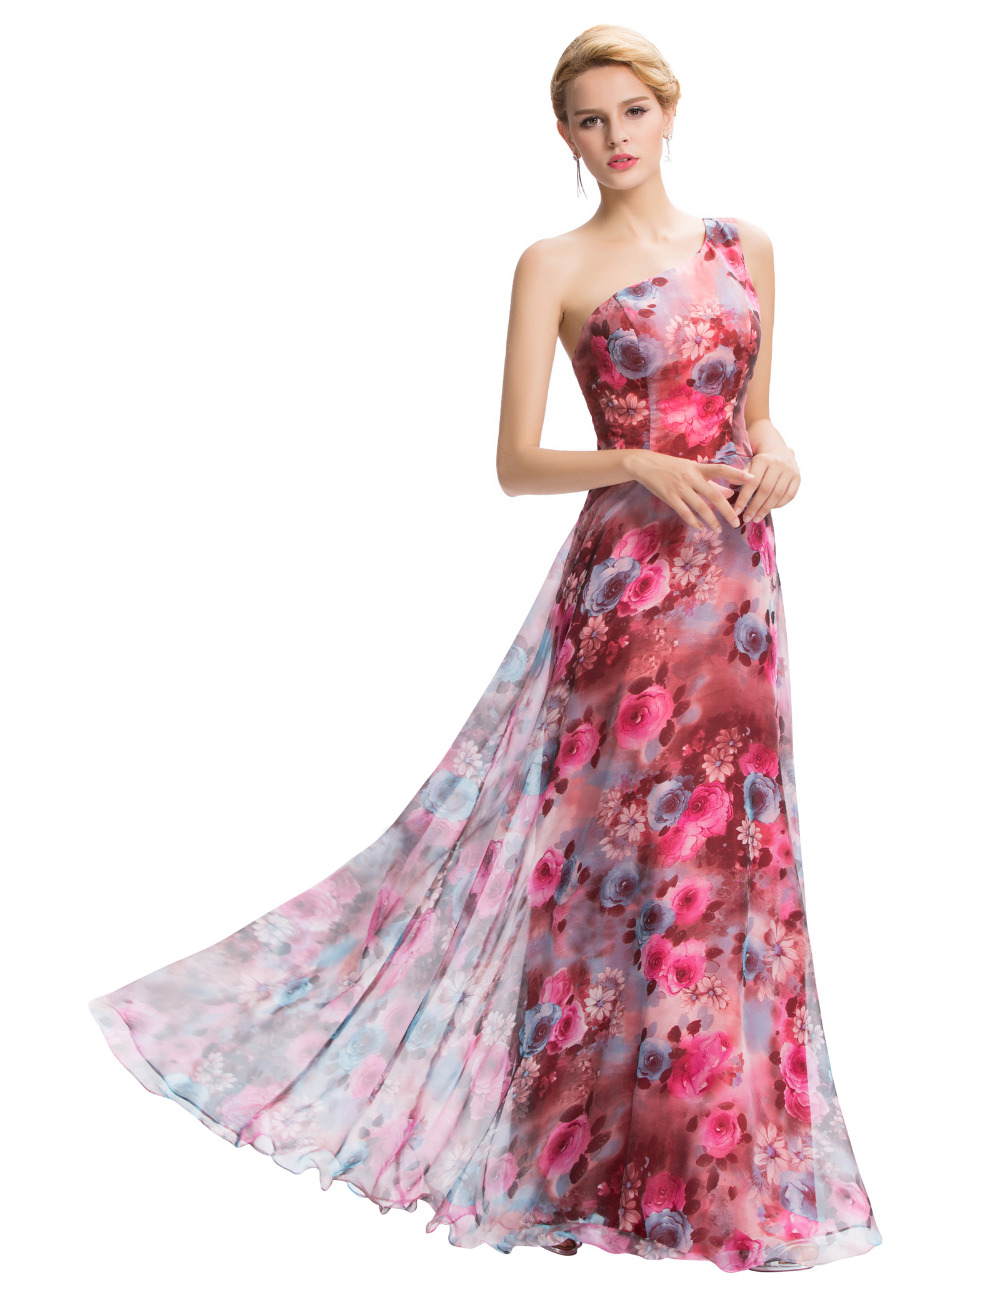 simple Ula - Enhance Your Prom Dress Shopping With These Tips